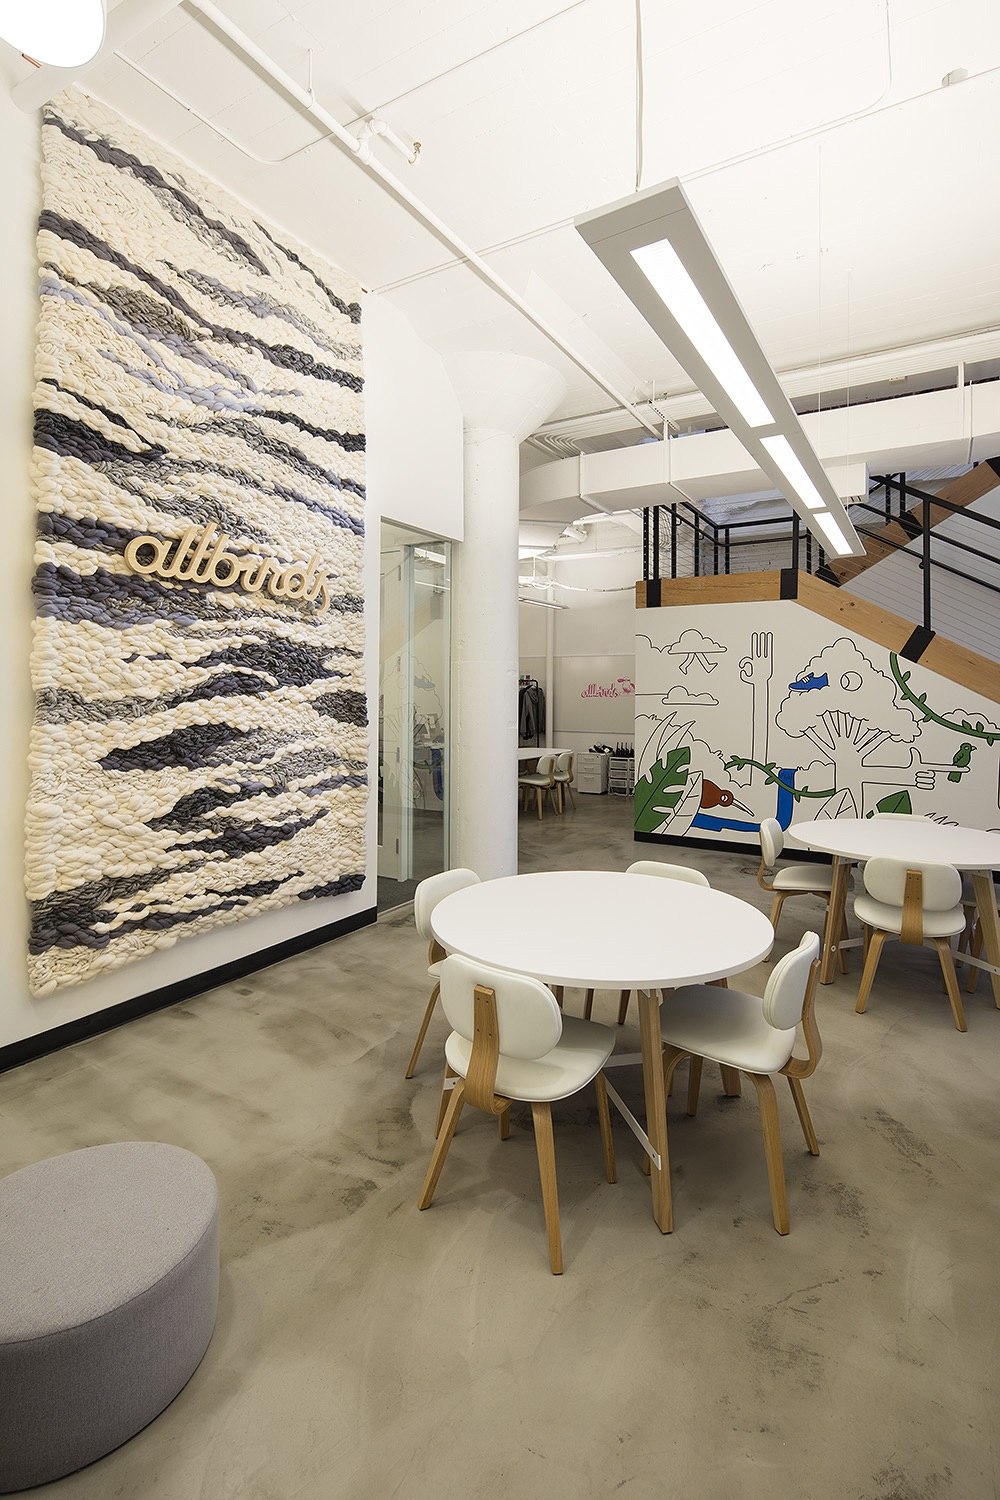 San Francisco : 5 Workspaces You'll love to work in